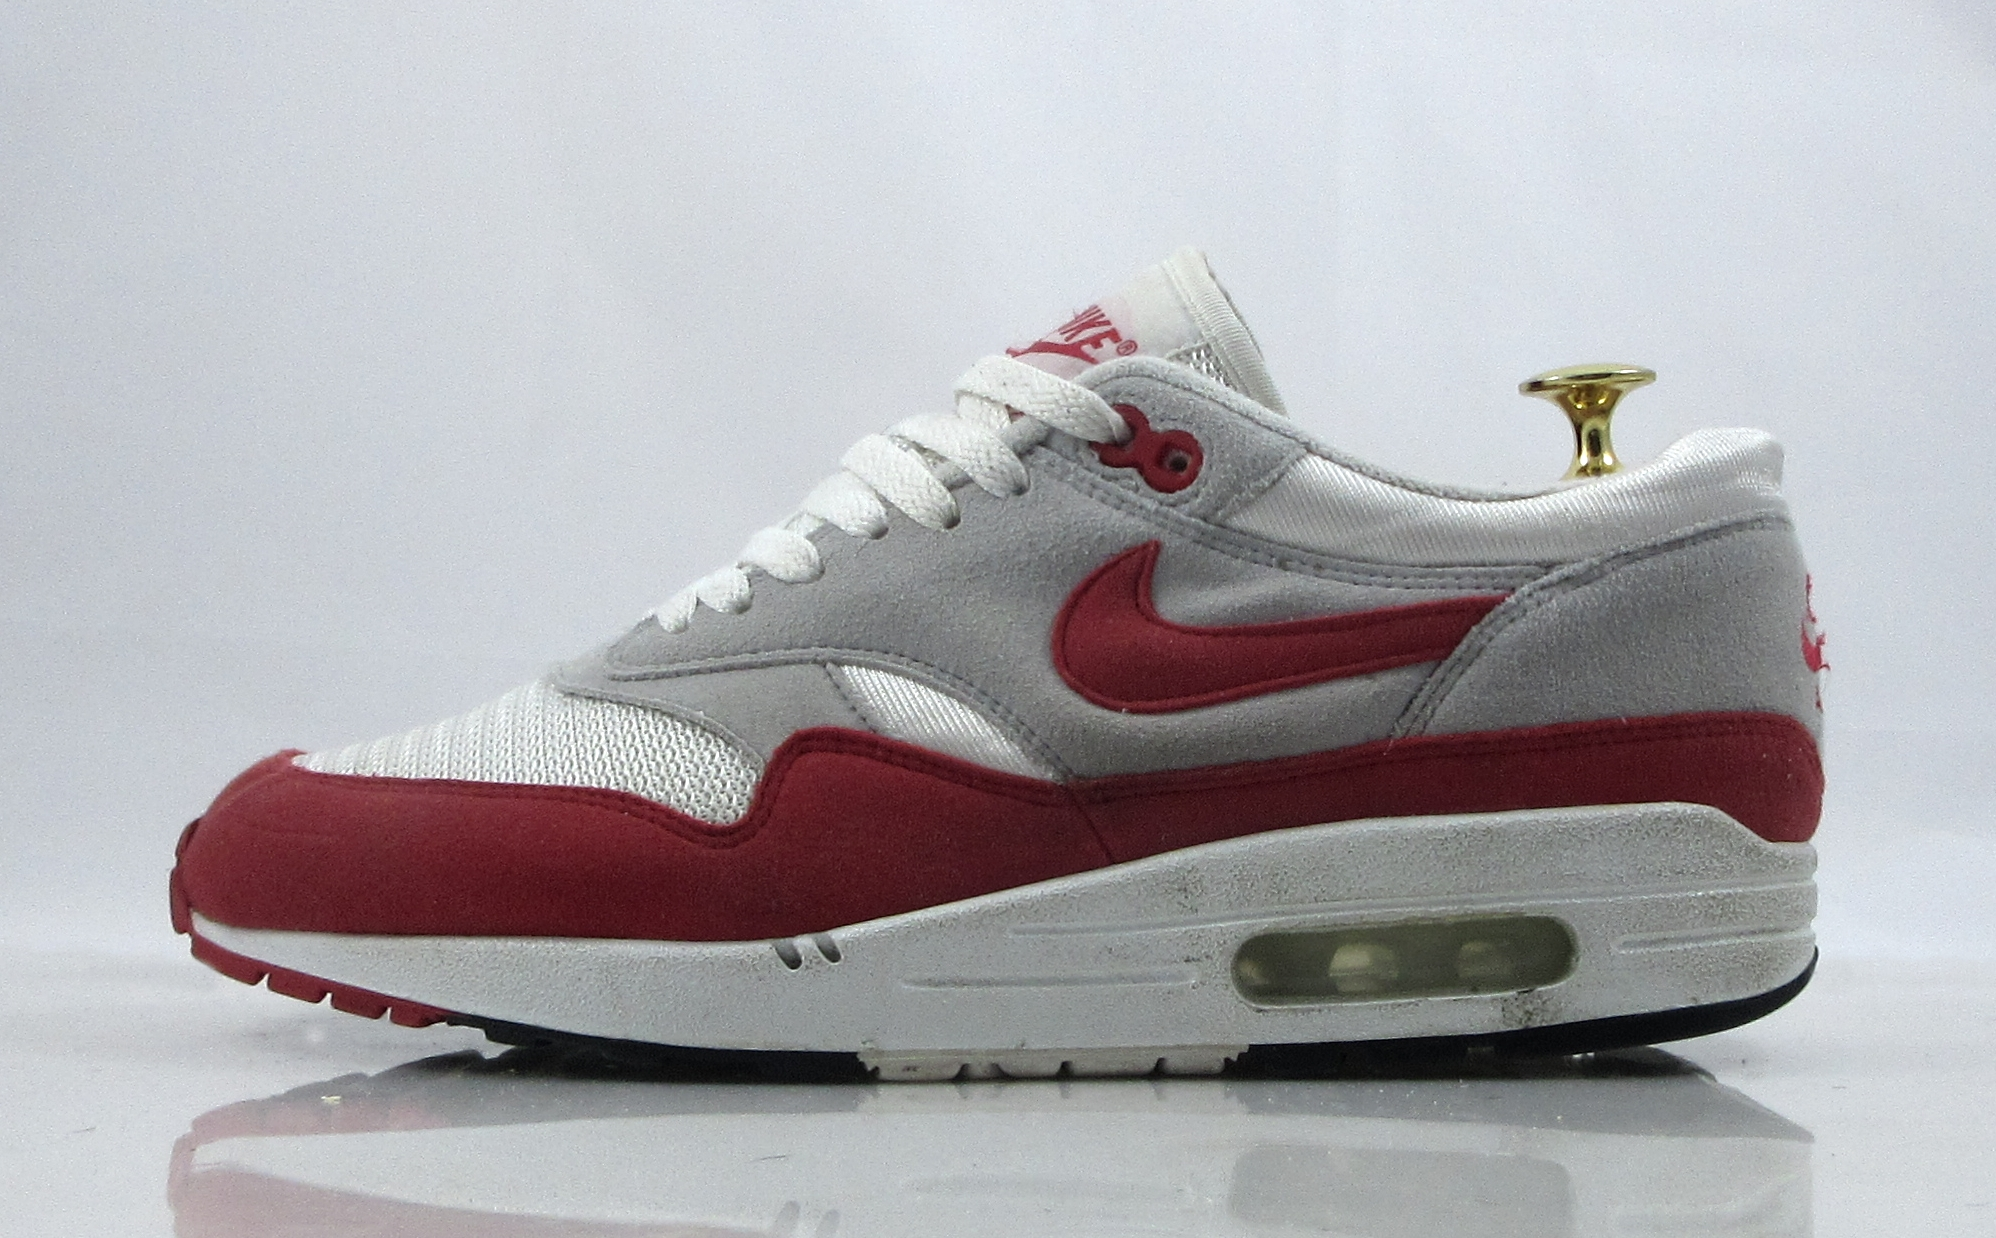 Nike Air Max 87 Review – snkrzwrg